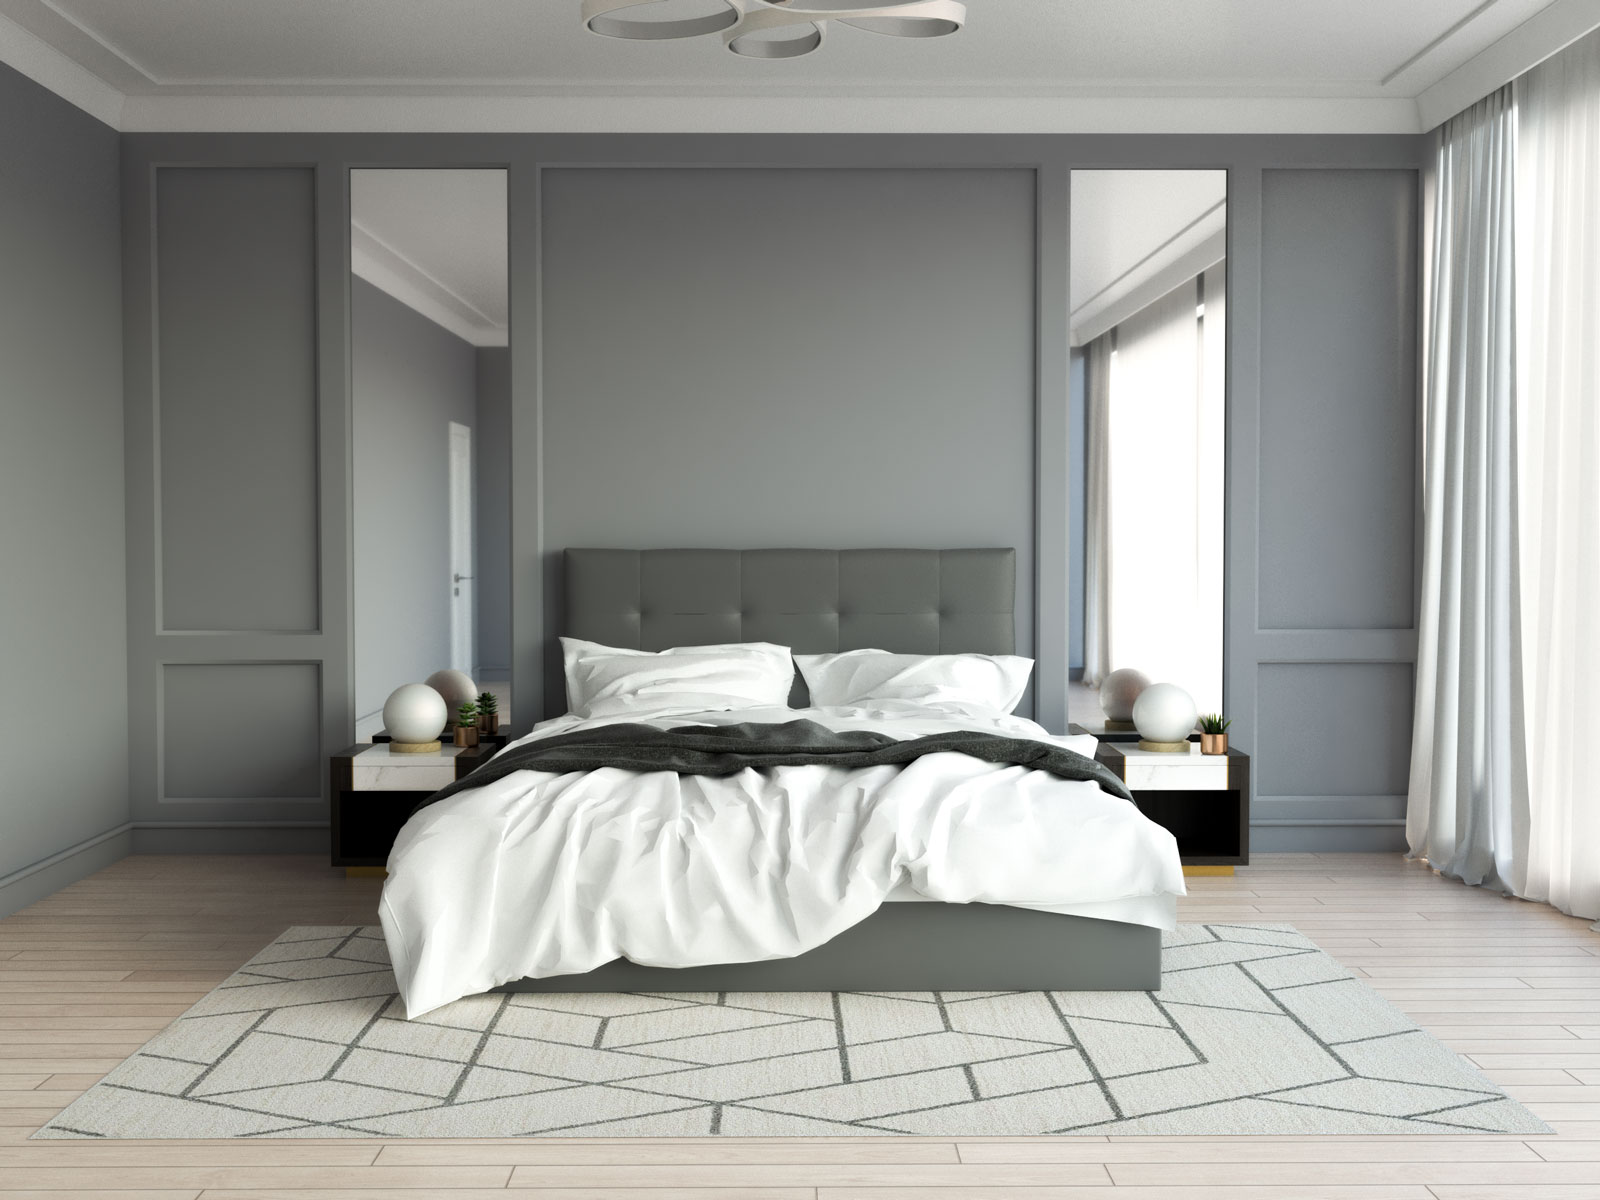 Ivory geometric-style rug with gray bedroom